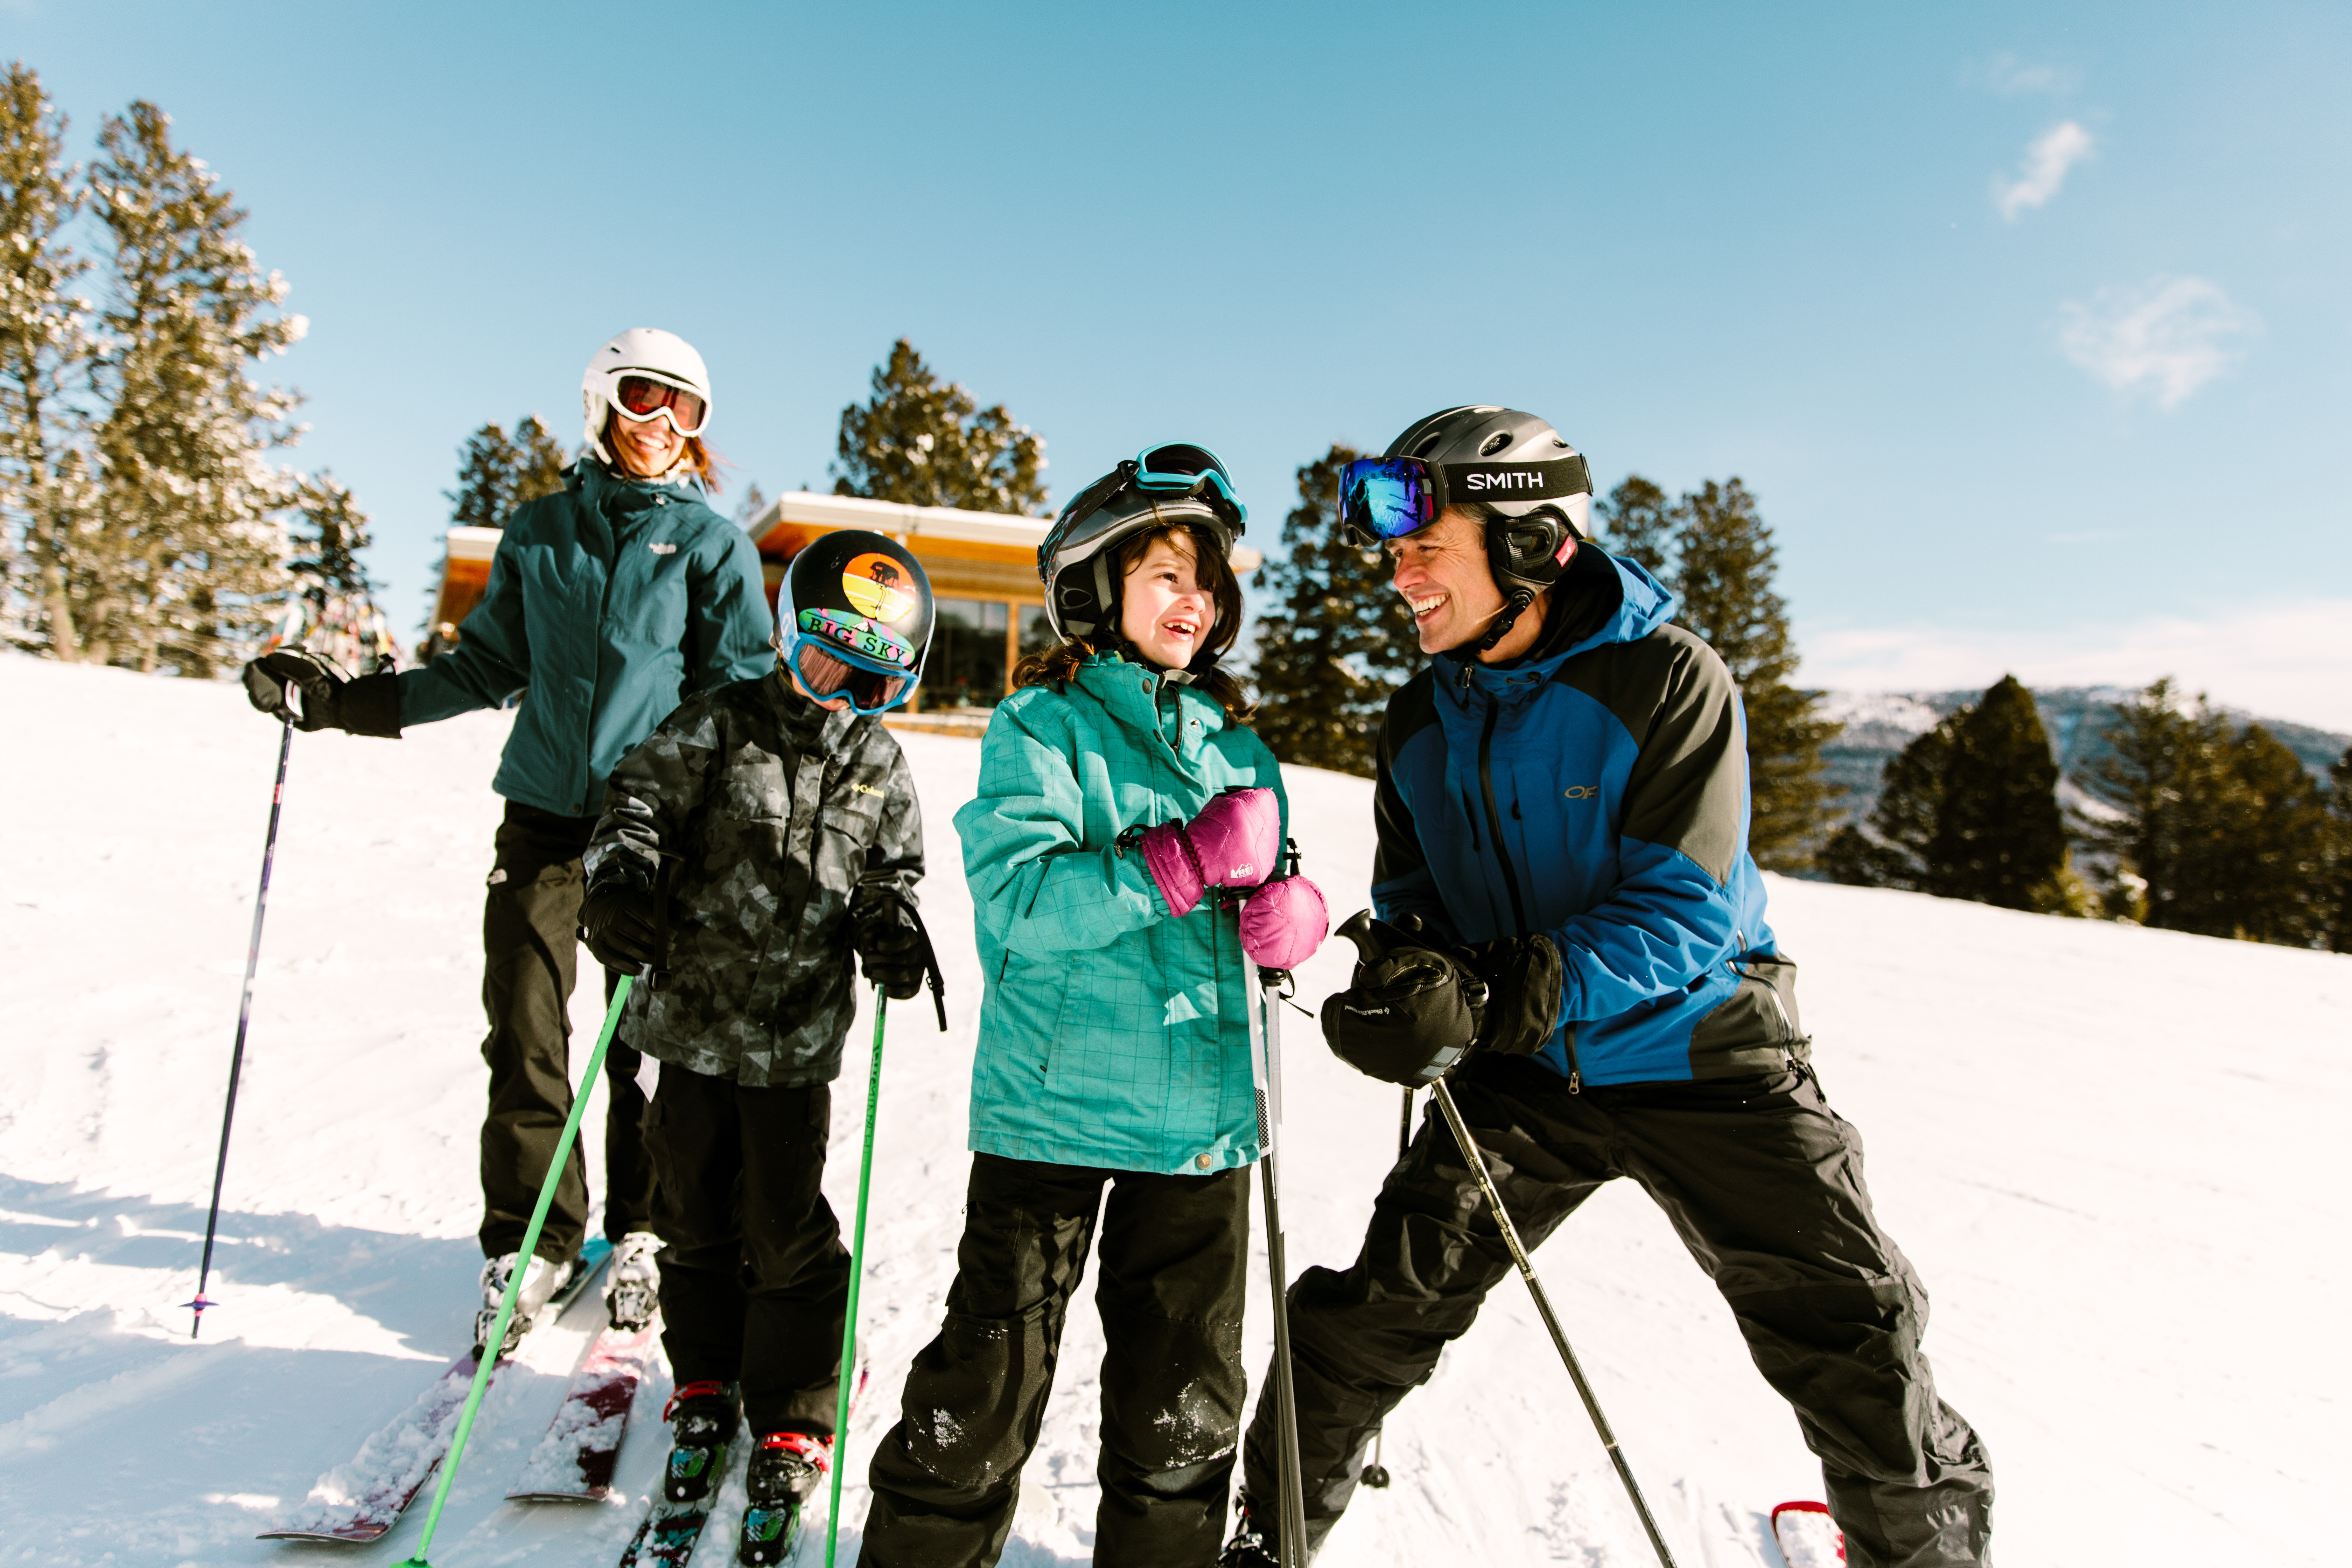 Help The Little Ones Learn To Love The Slopes